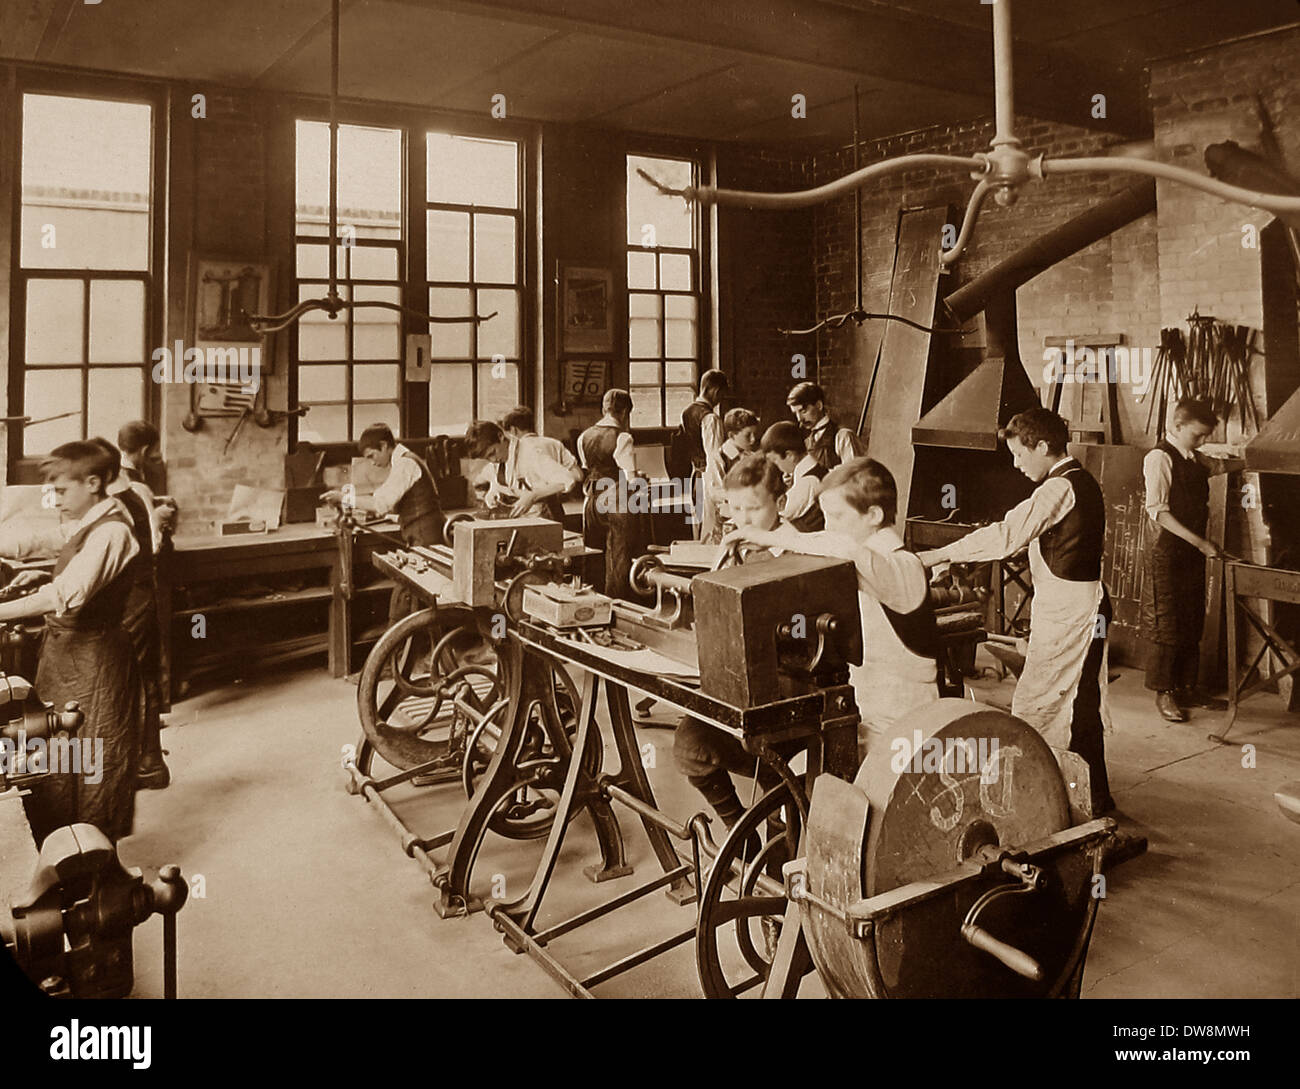 1920/30s School metal working class - Stock Image